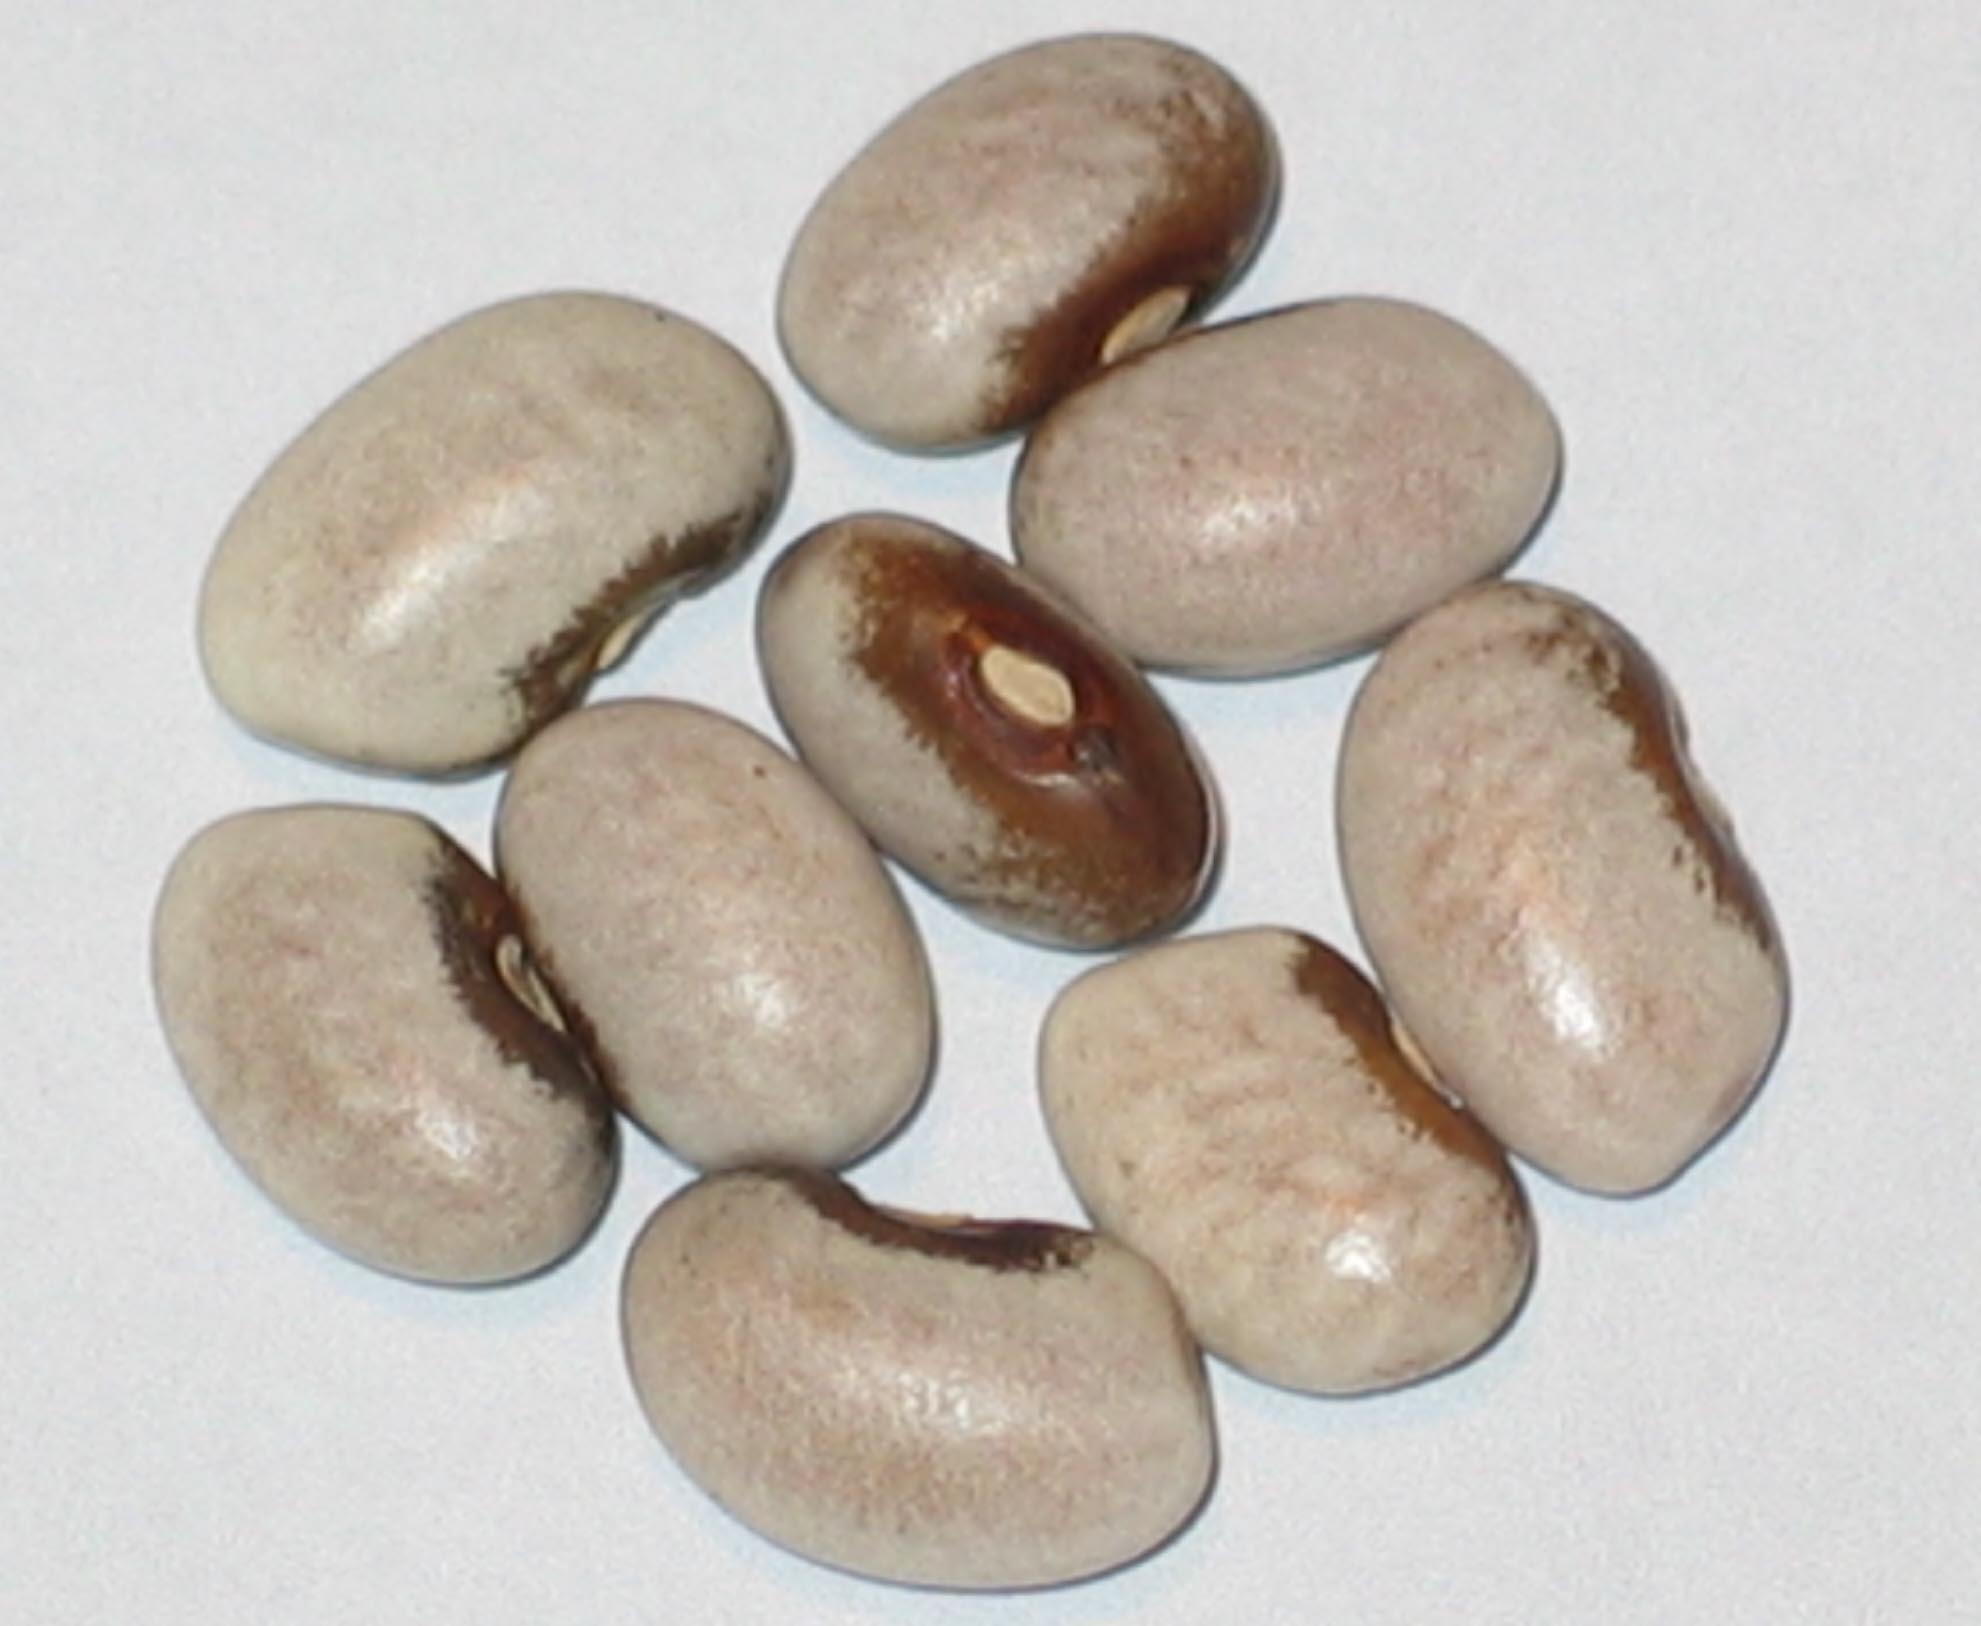 image of Brown-Eyed Goose beans